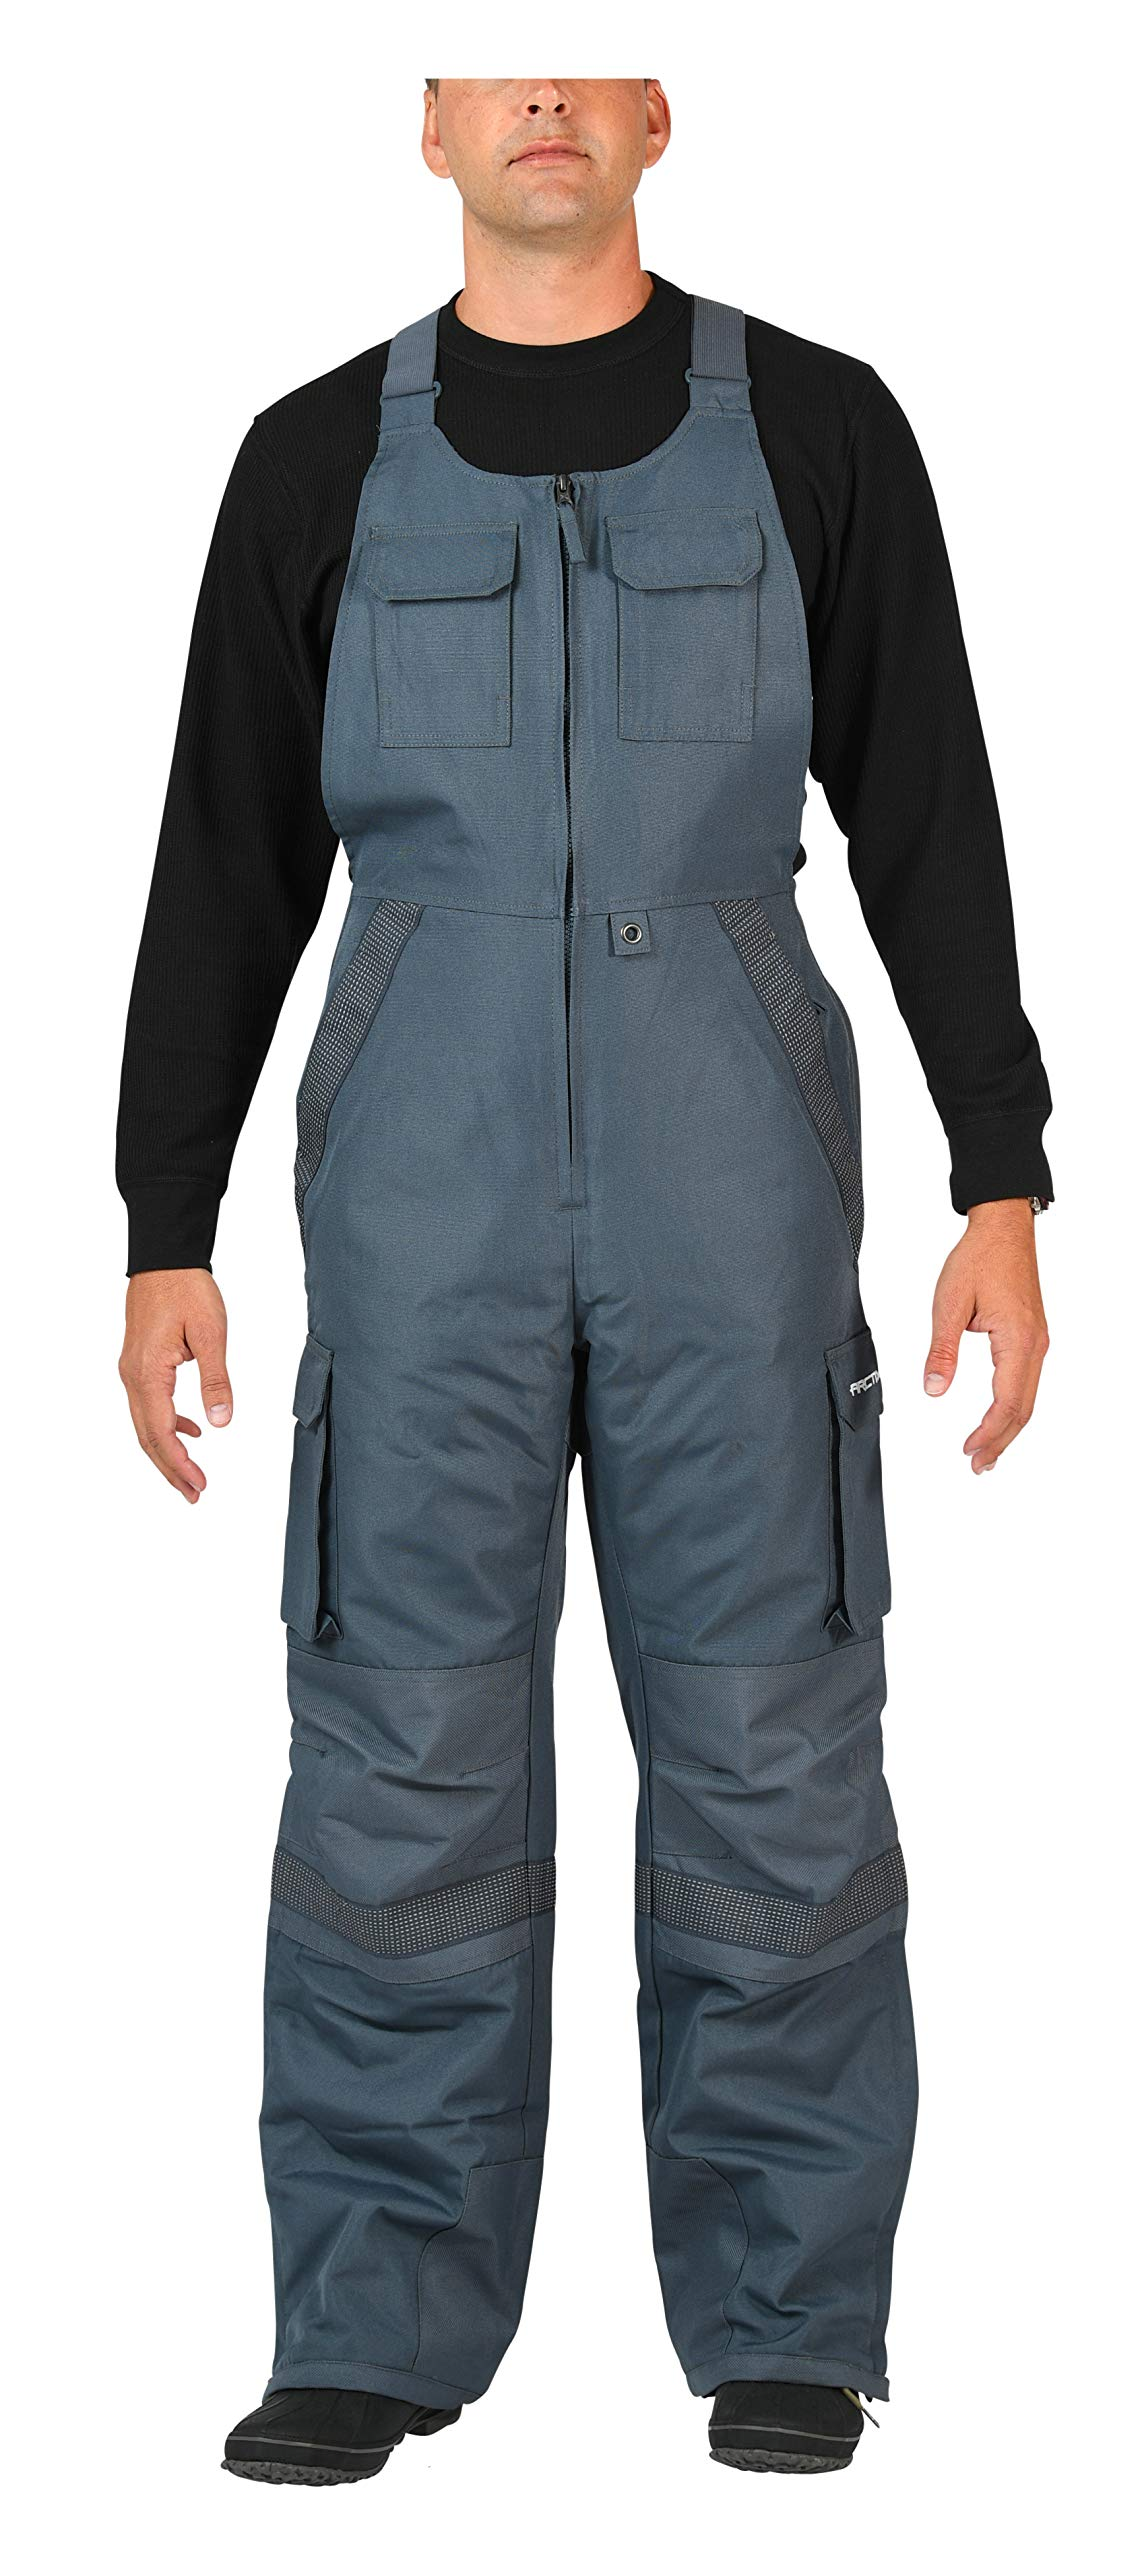 Arctix Men's Tundra Ballistic Bib Overalls With Added Visibility, Steel, 3X-Large by Arctix